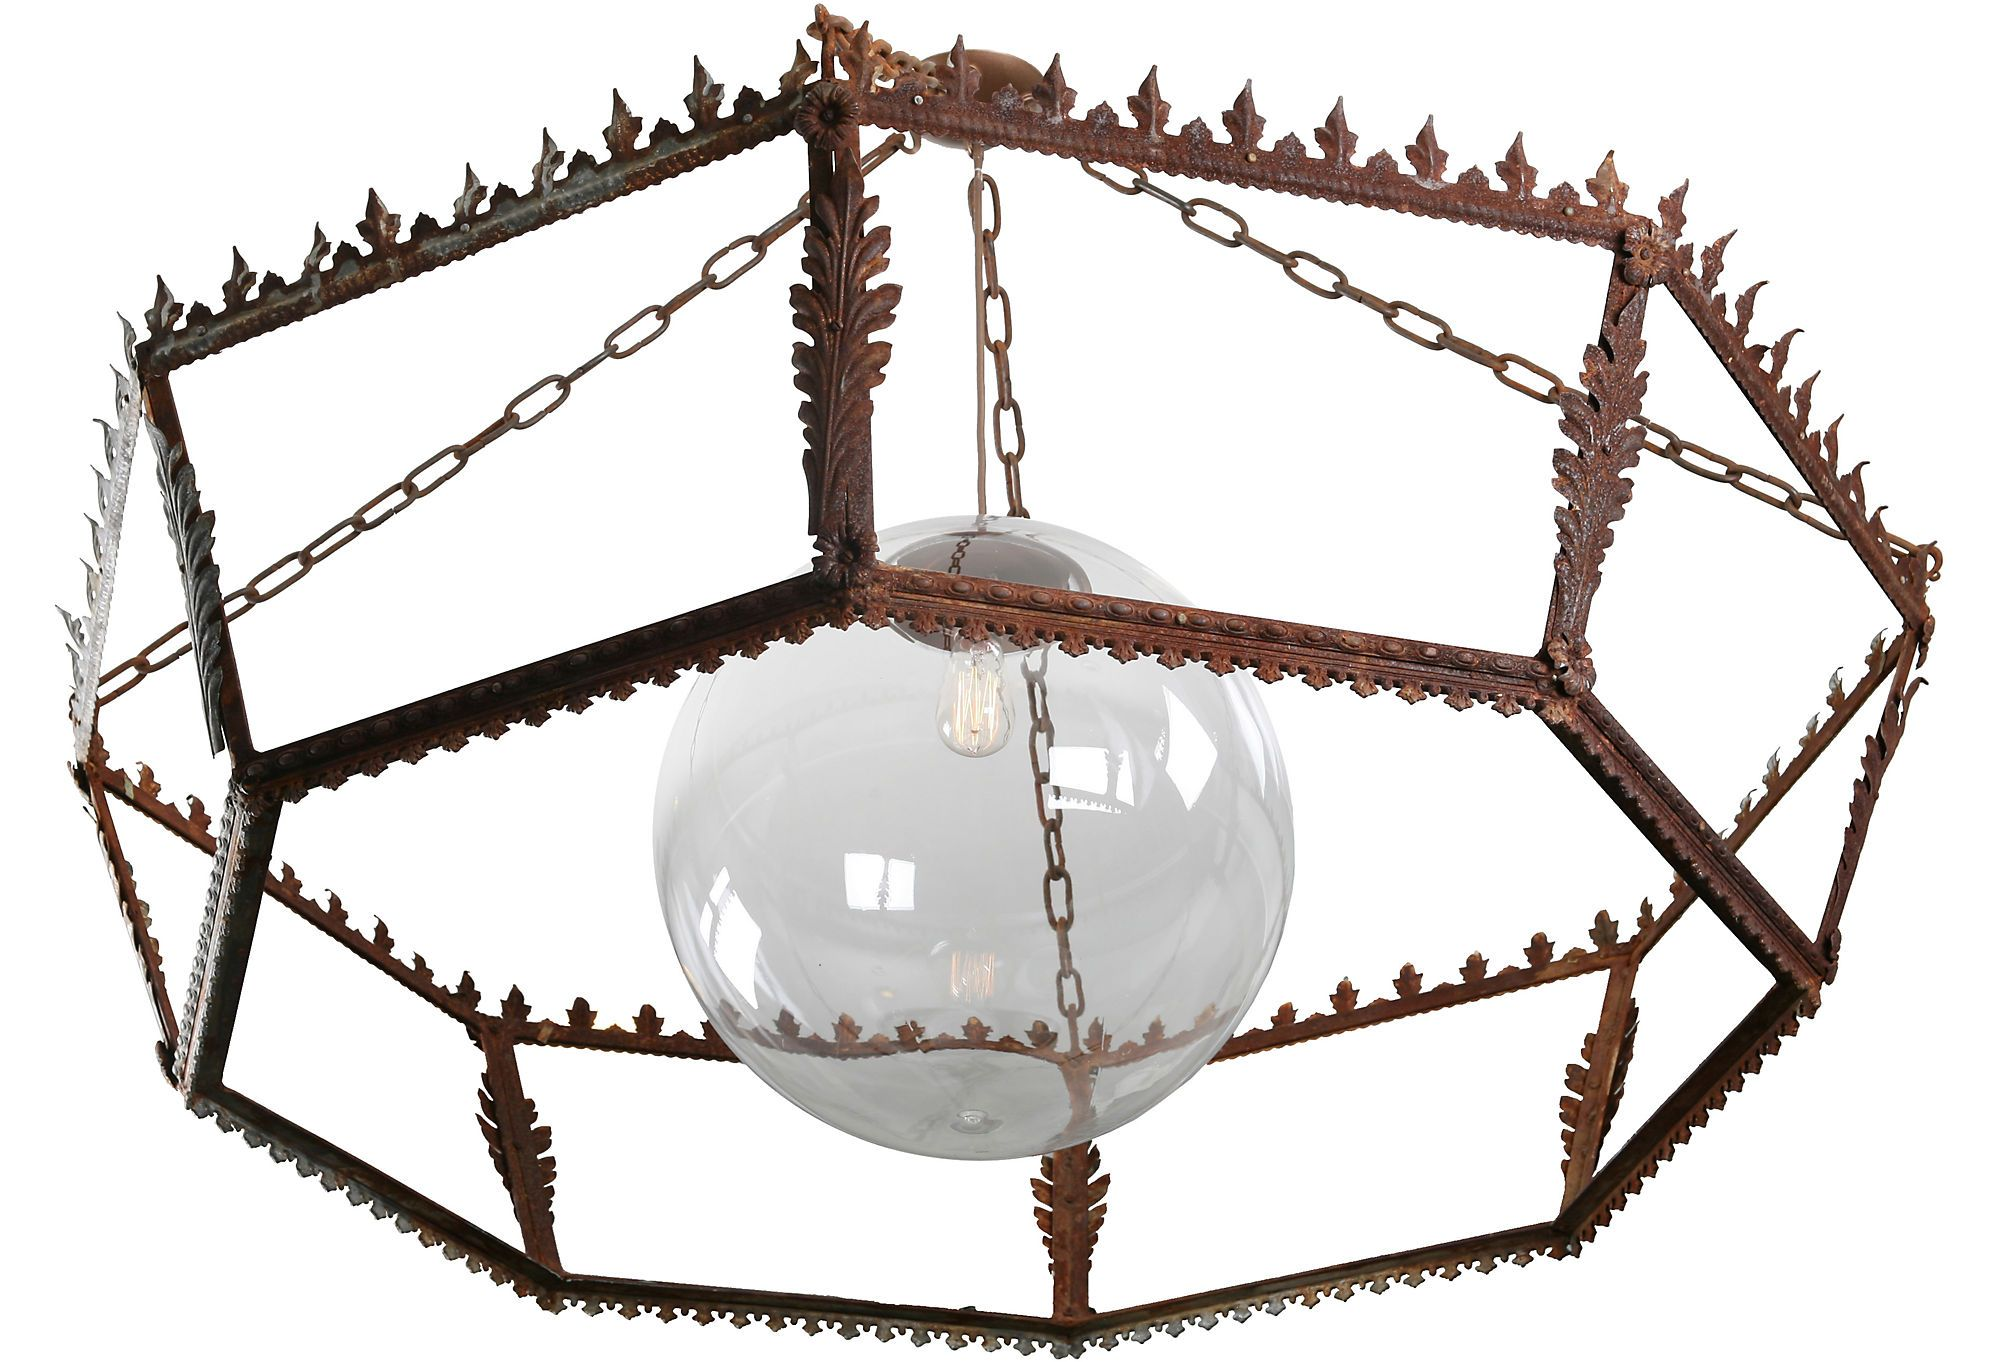 Architectural Fragment Chandelier - One Kings Lane - Vintage & Market Finds - Lighting